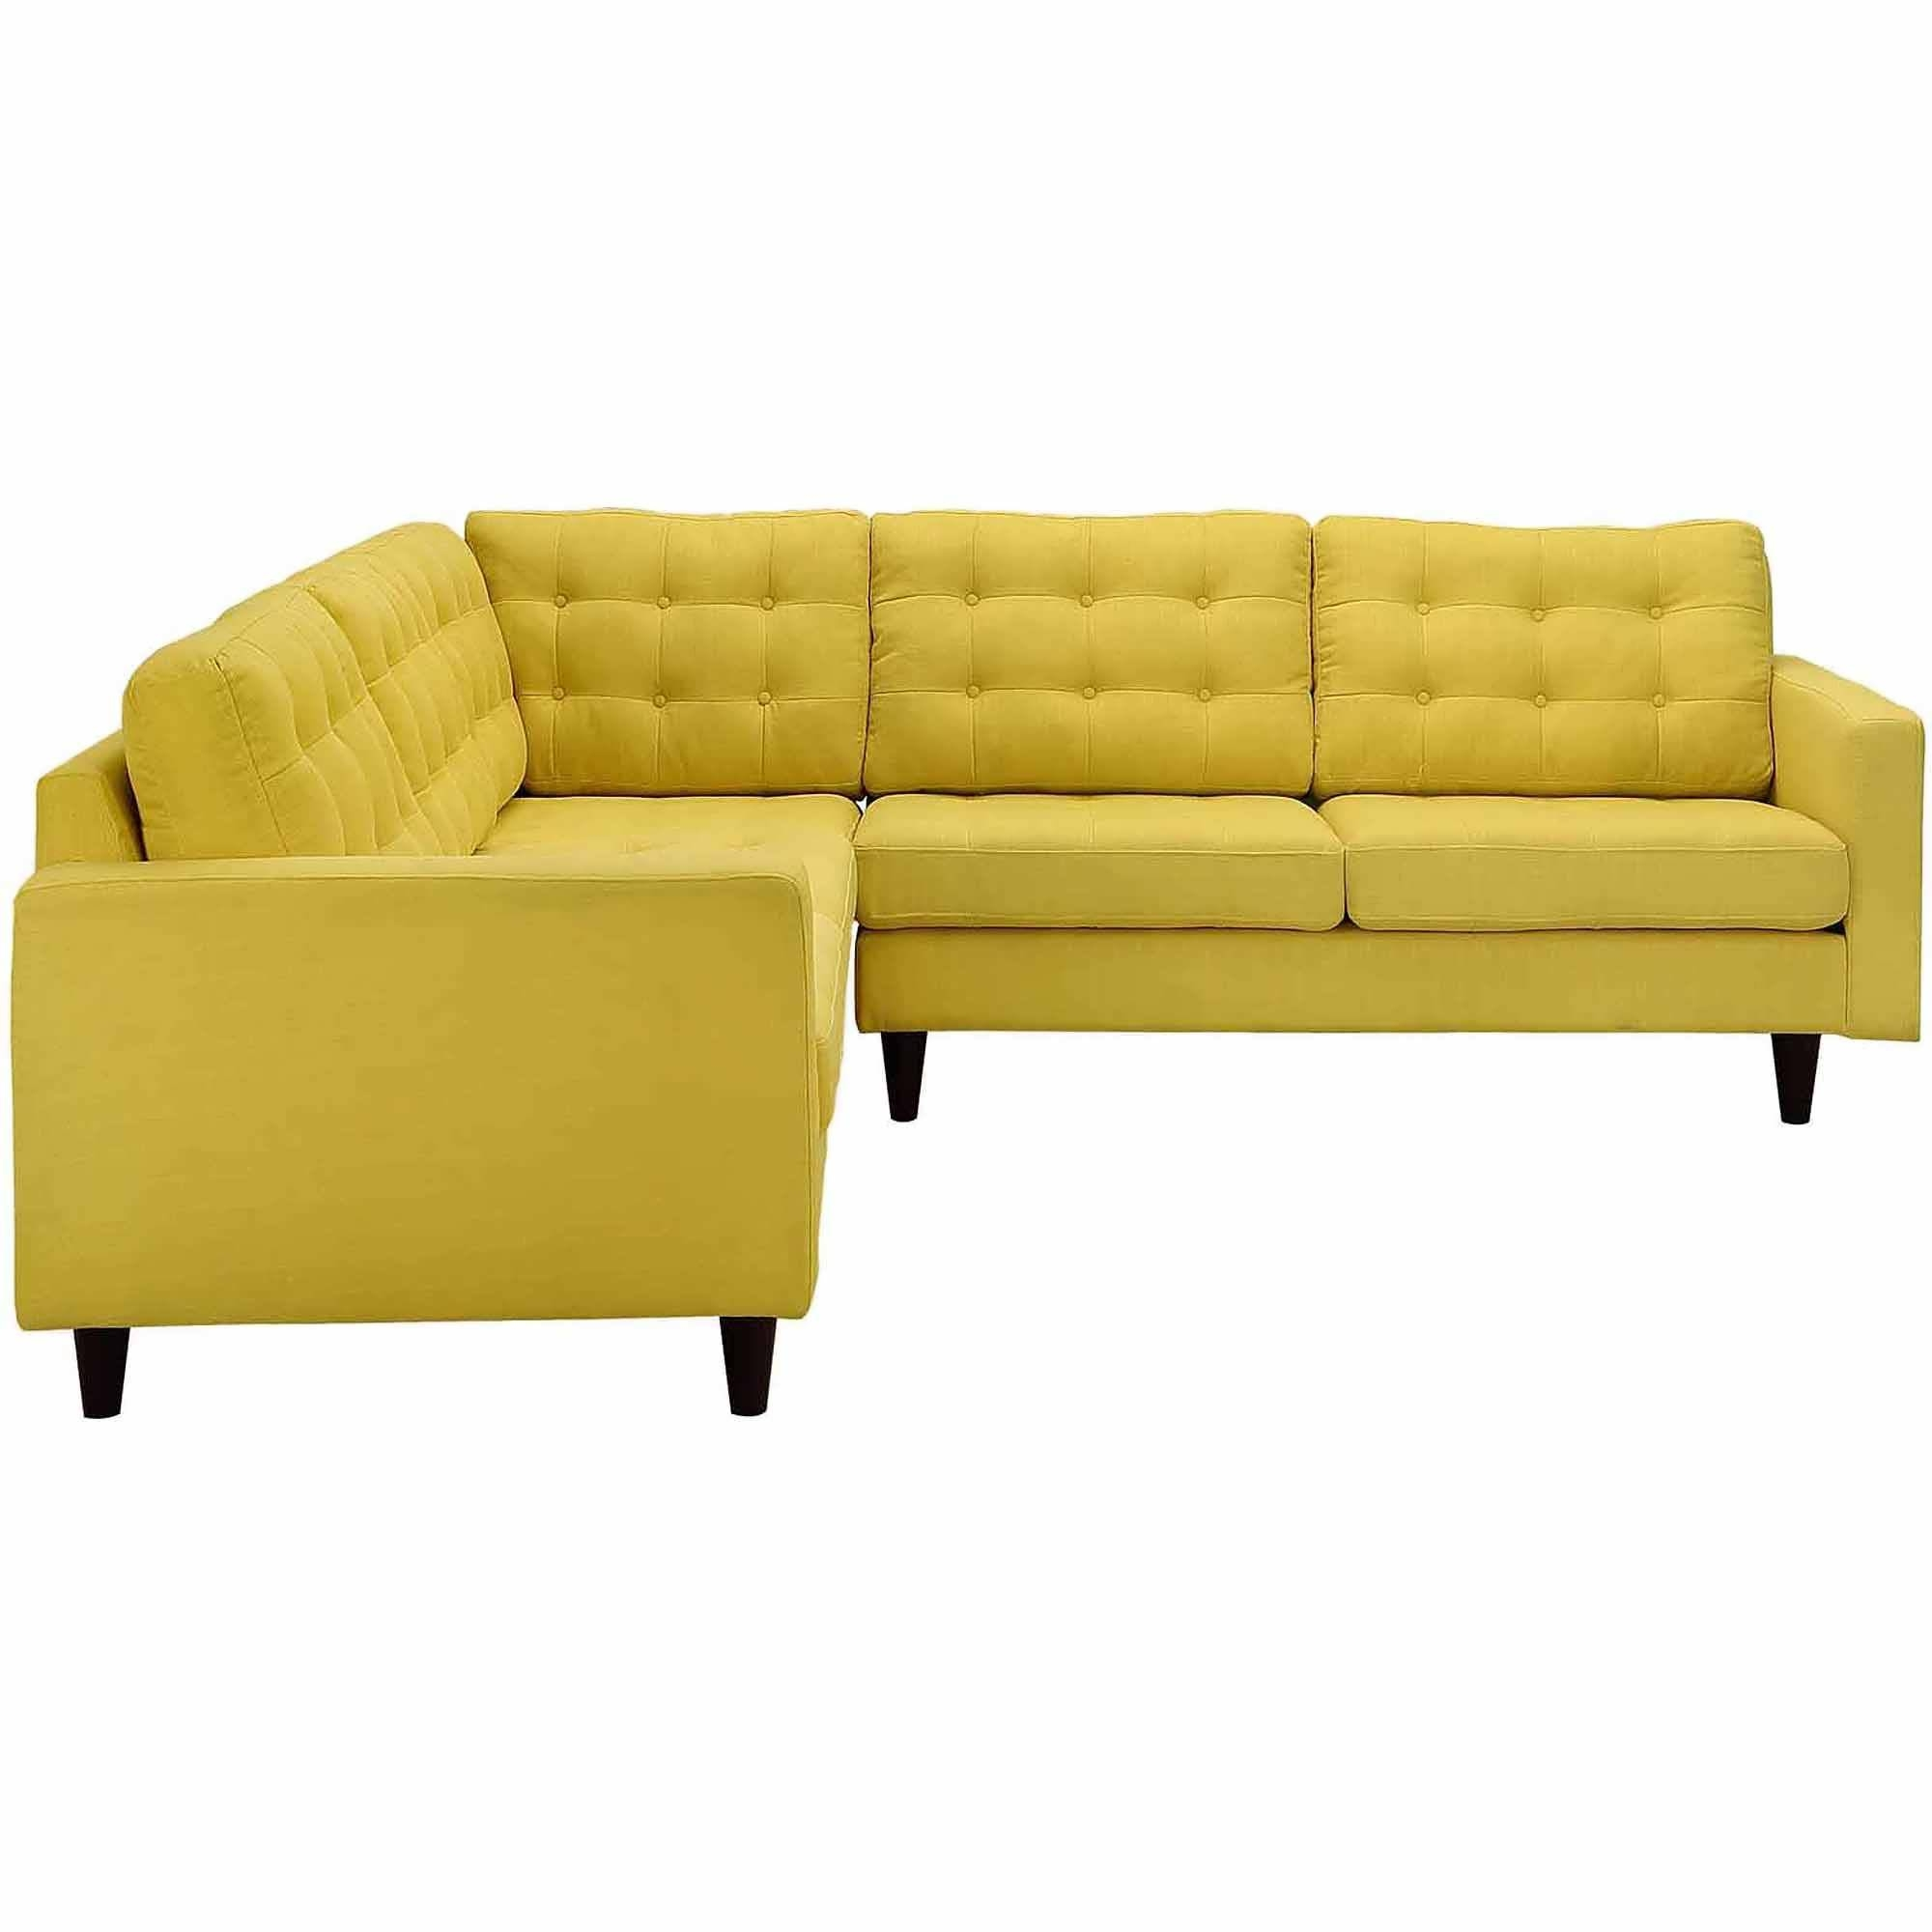 Sofa : Tufted Sofa Couch Contemporary Furniture Couch Bed within Affordable Tufted Sofas (Image 13 of 15)